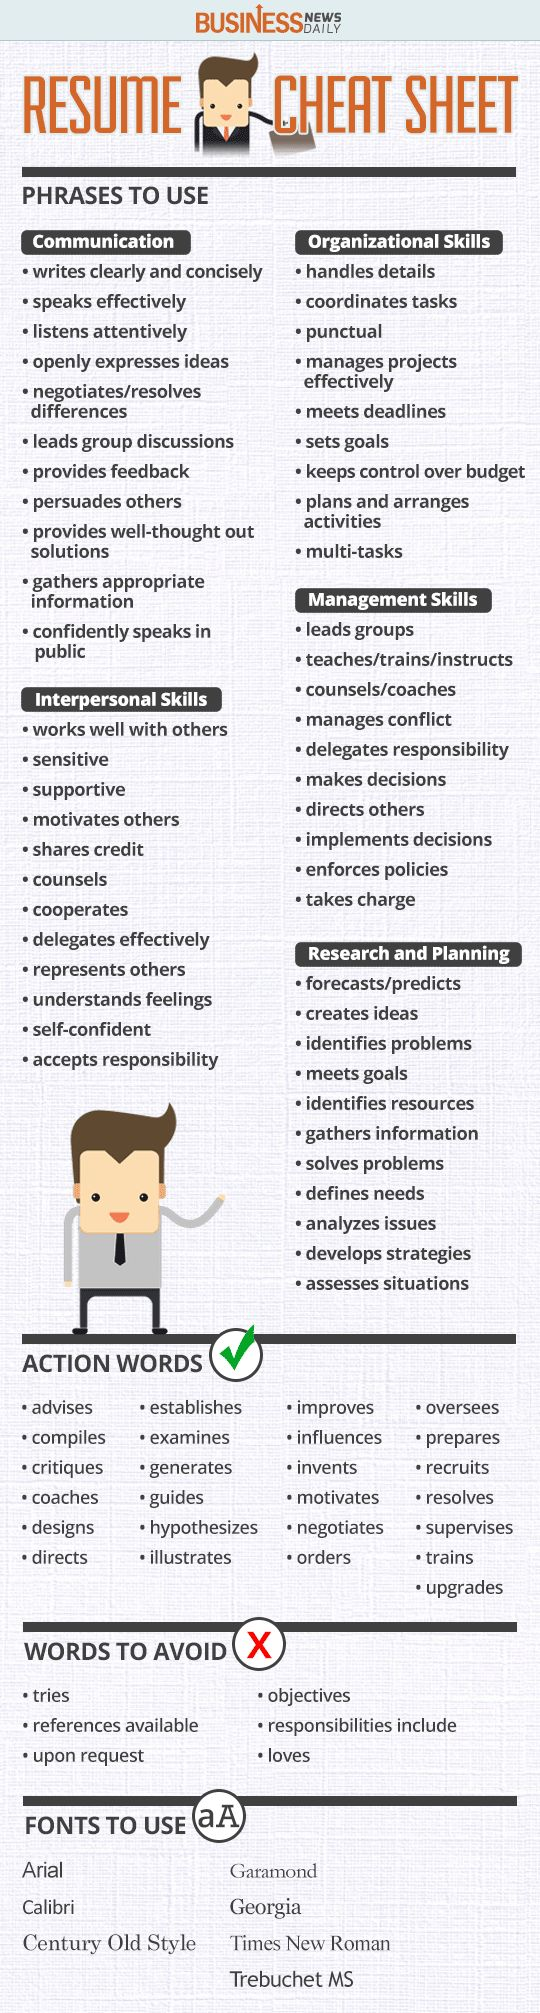 Opposenewapstandardsus  Marvellous  Ideas About Resume On Pinterest  Cv Format Resume Cv And  With Marvelous Resume Cheat Sheet Infographic Andrews Almost Done With A Complete Unit On Employment Which With Charming Resume Tool Also General Manager Restaurant Resume In Addition Vendor Management Resume And Resume Rewrite As Well As Sale Resume Additionally How To Organize Resume From Pinterestcom With Opposenewapstandardsus  Marvelous  Ideas About Resume On Pinterest  Cv Format Resume Cv And  With Charming Resume Cheat Sheet Infographic Andrews Almost Done With A Complete Unit On Employment Which And Marvellous Resume Tool Also General Manager Restaurant Resume In Addition Vendor Management Resume From Pinterestcom